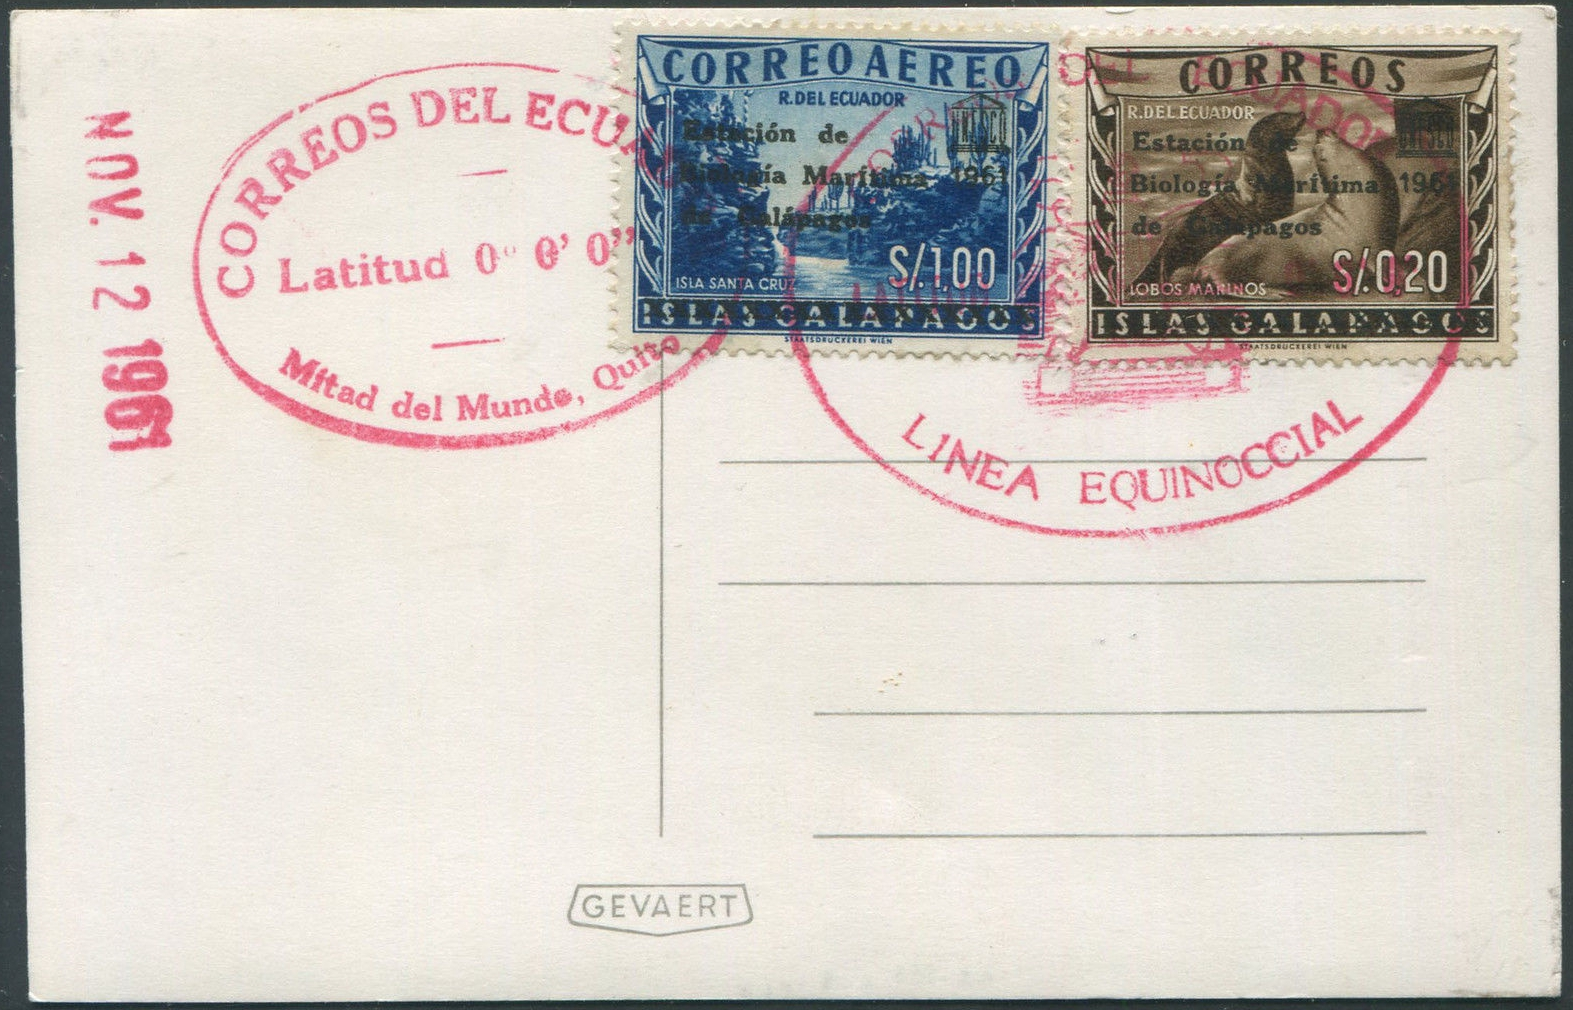 Galapagos Islands released seven stamps as an entity separate from Ecuador between 1957 and 1959 (Scott #L1-L3 and LC1-LC4). In October 1961, Ecuador reissued the stamps with overprints marking UNESCO assistance in establishing Galapagos National Park. These are listed as Ecuador Scott #684-686, the lowest and highest values of which are affixed to the above card.